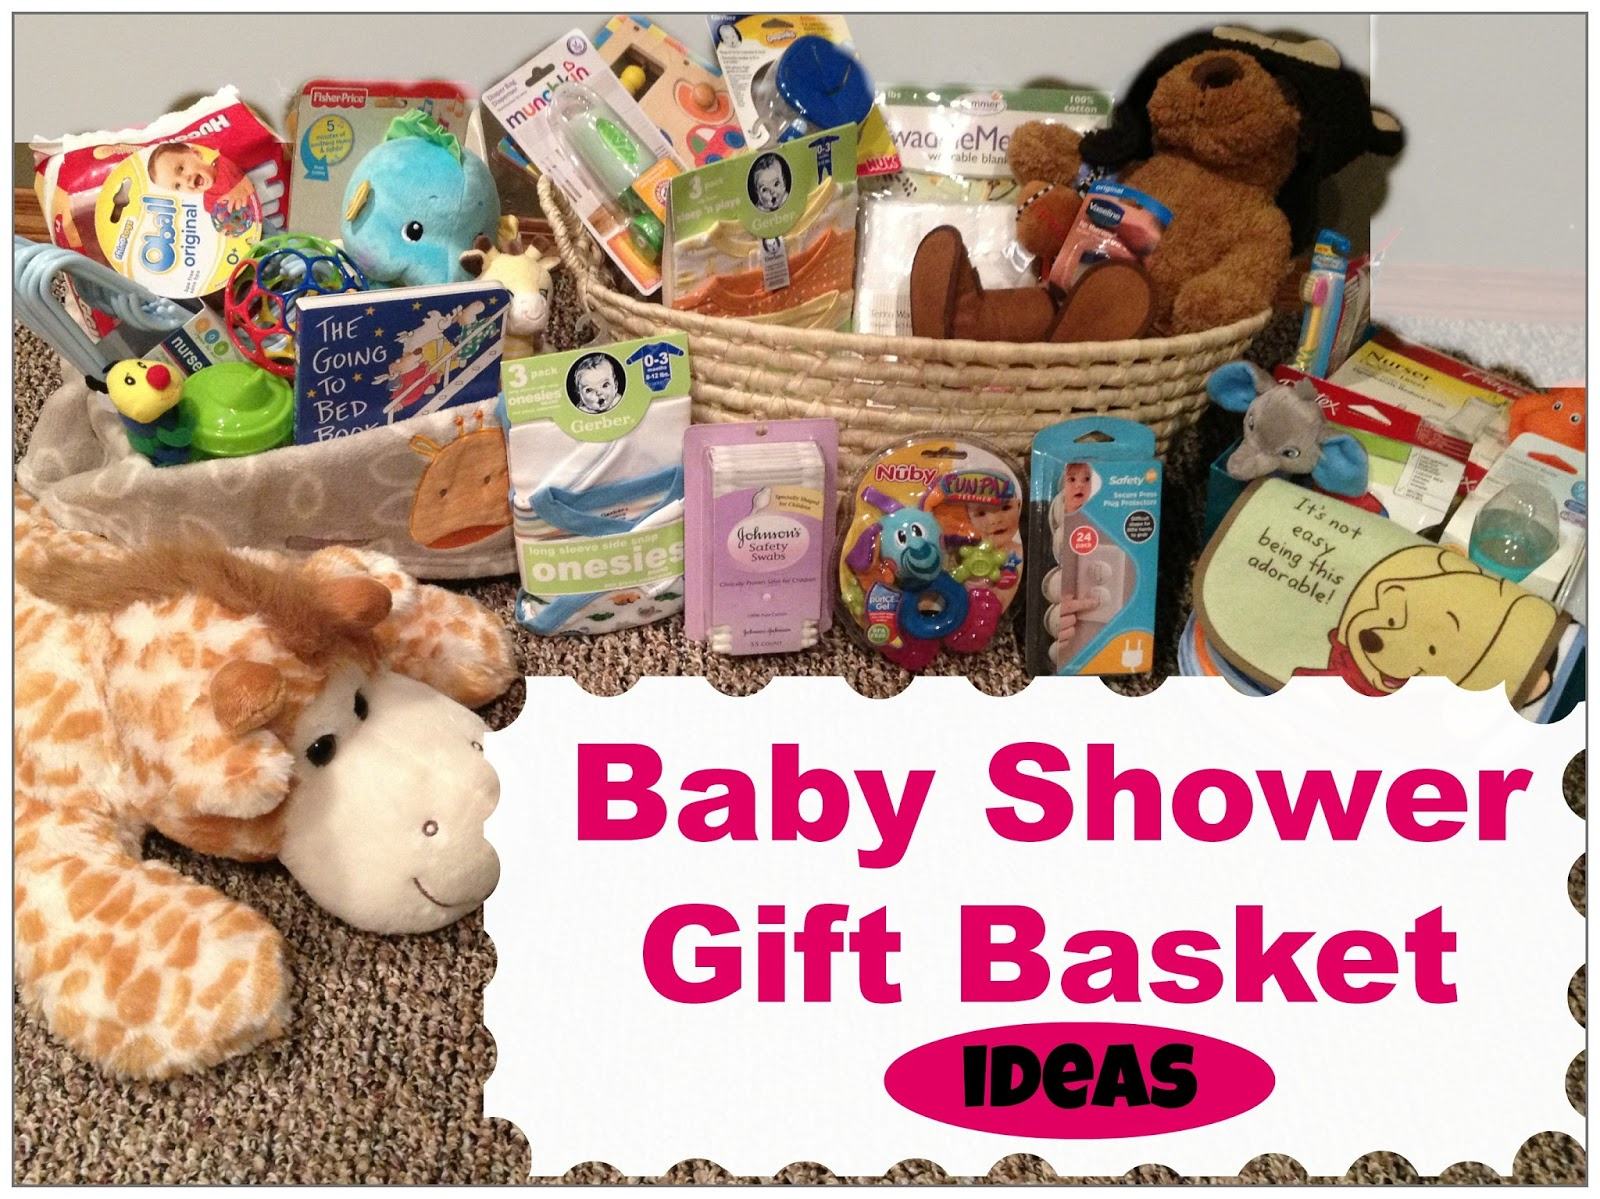 Baby Shower Return Gifts Walmart ~ Walmart gift registry baby shower